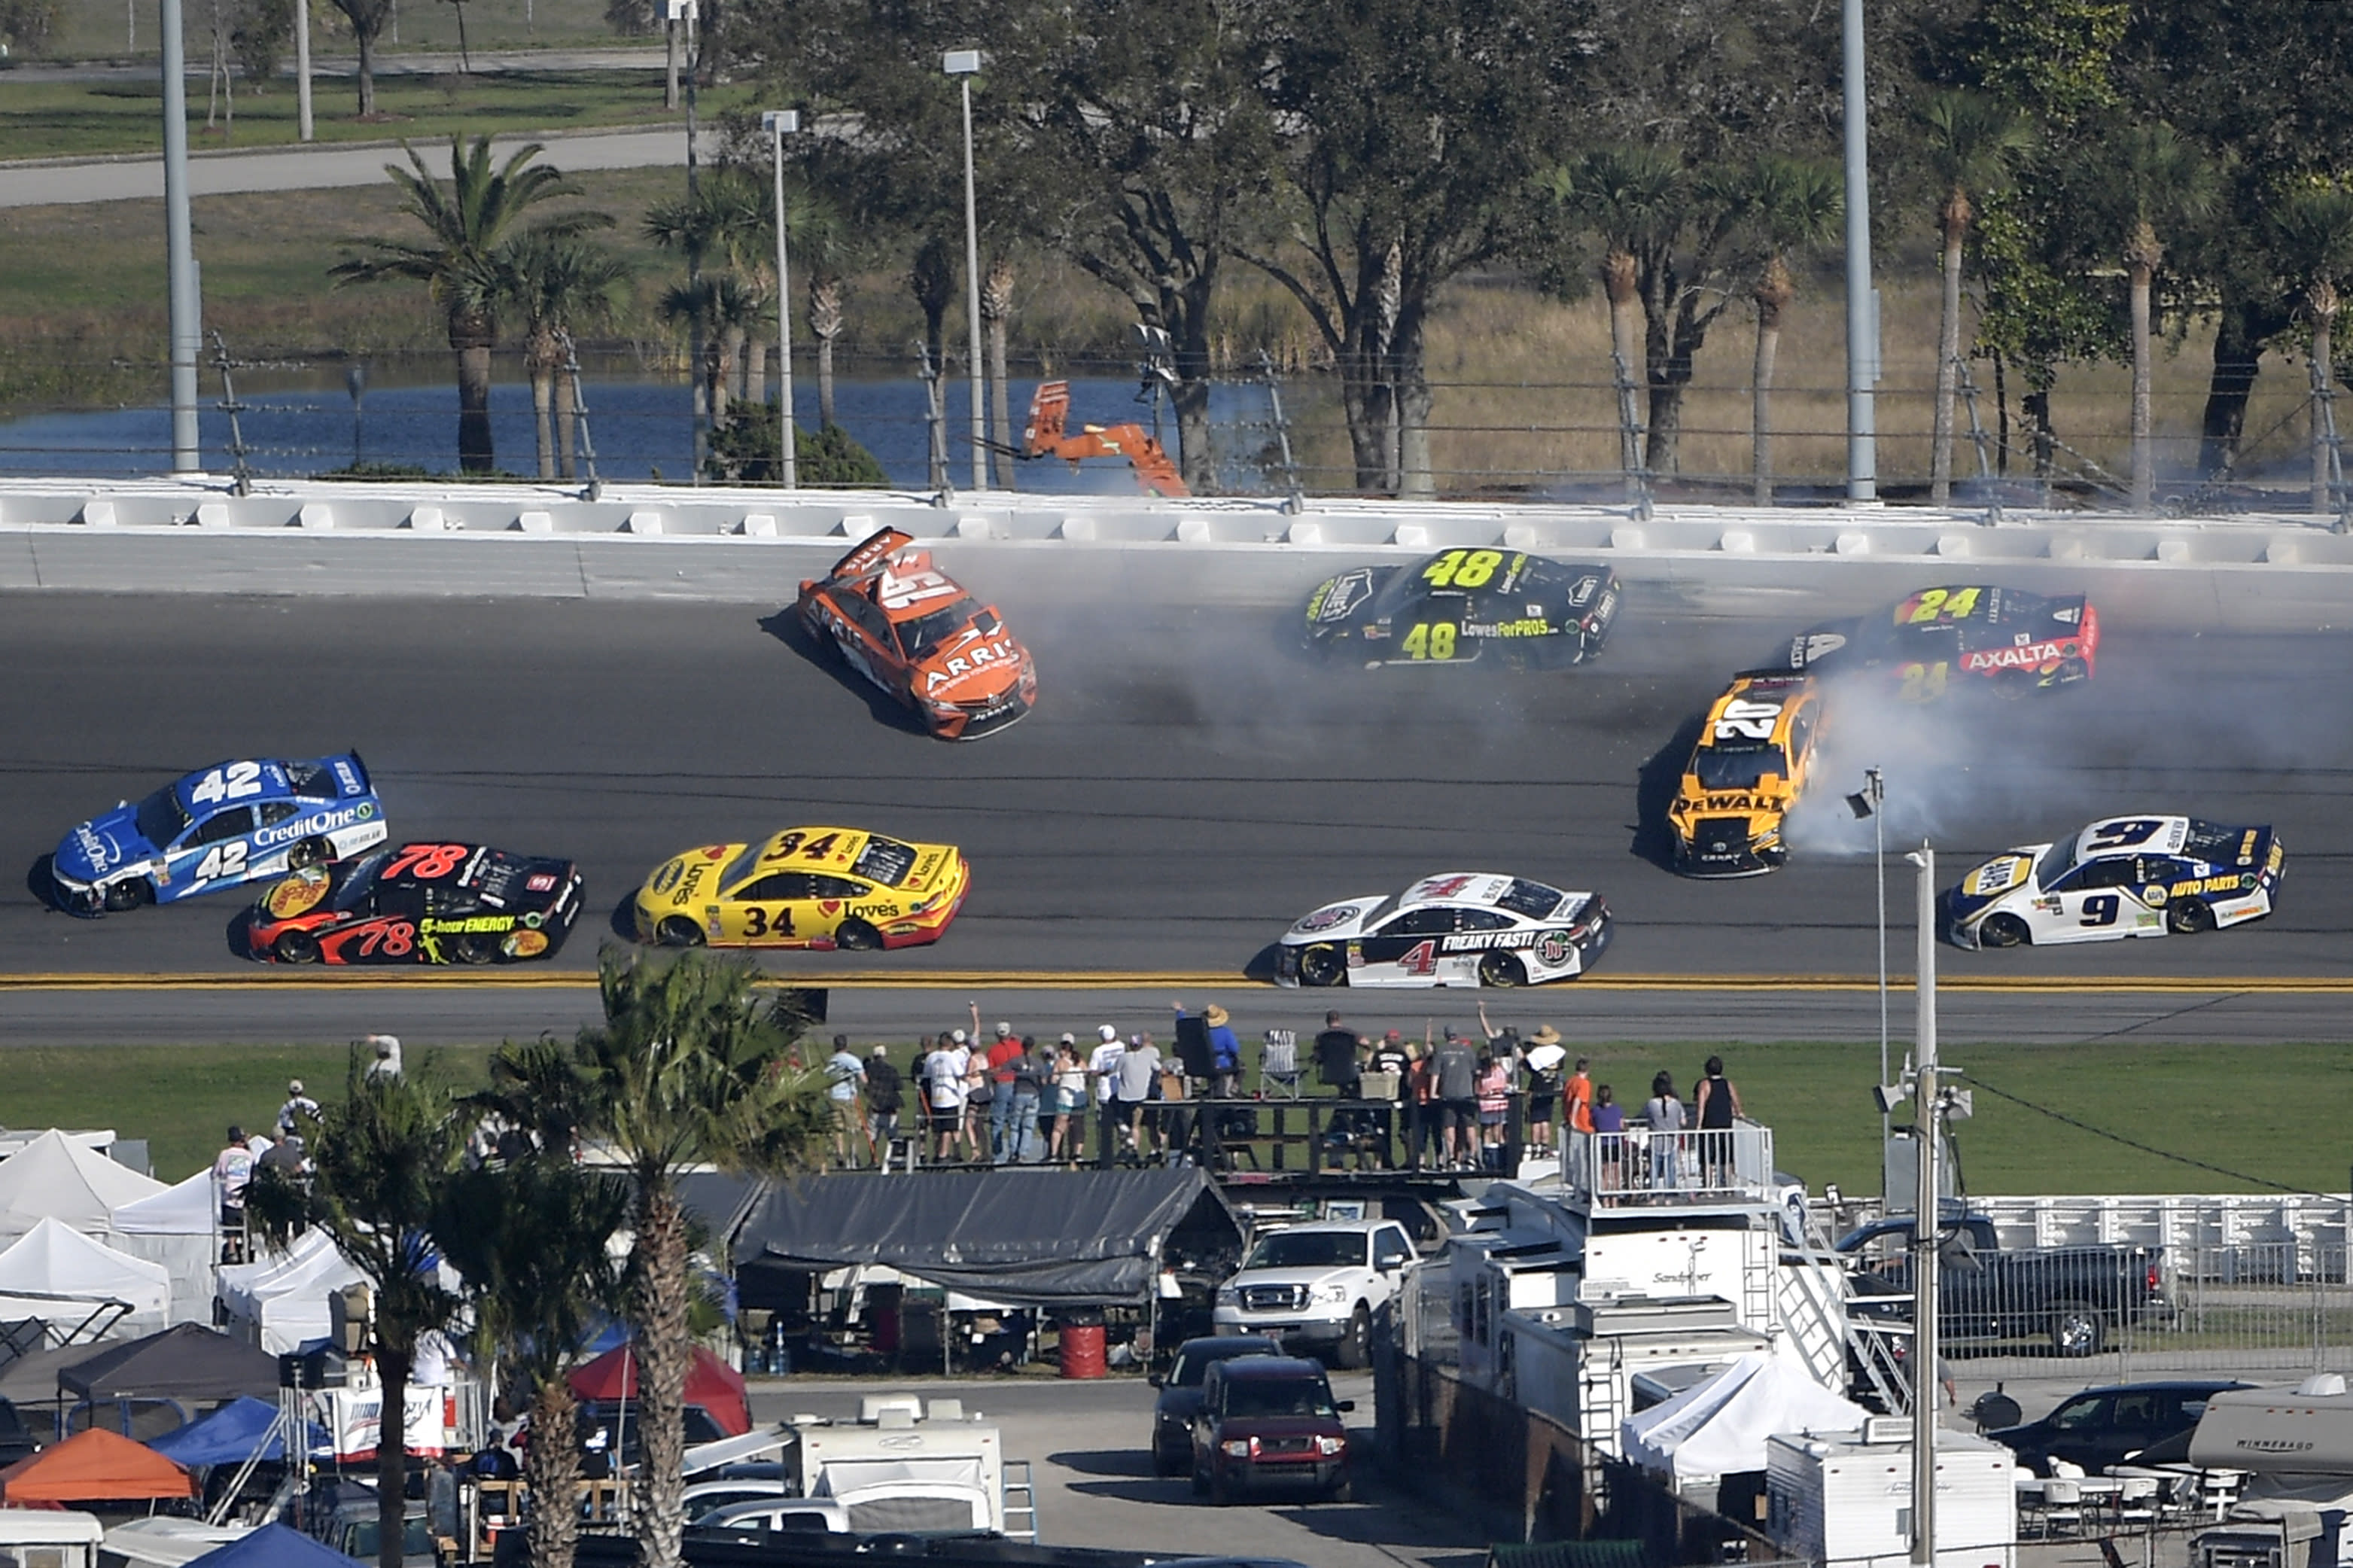 Jimmie Johnson taken out of Daytona 500 in first stage crash